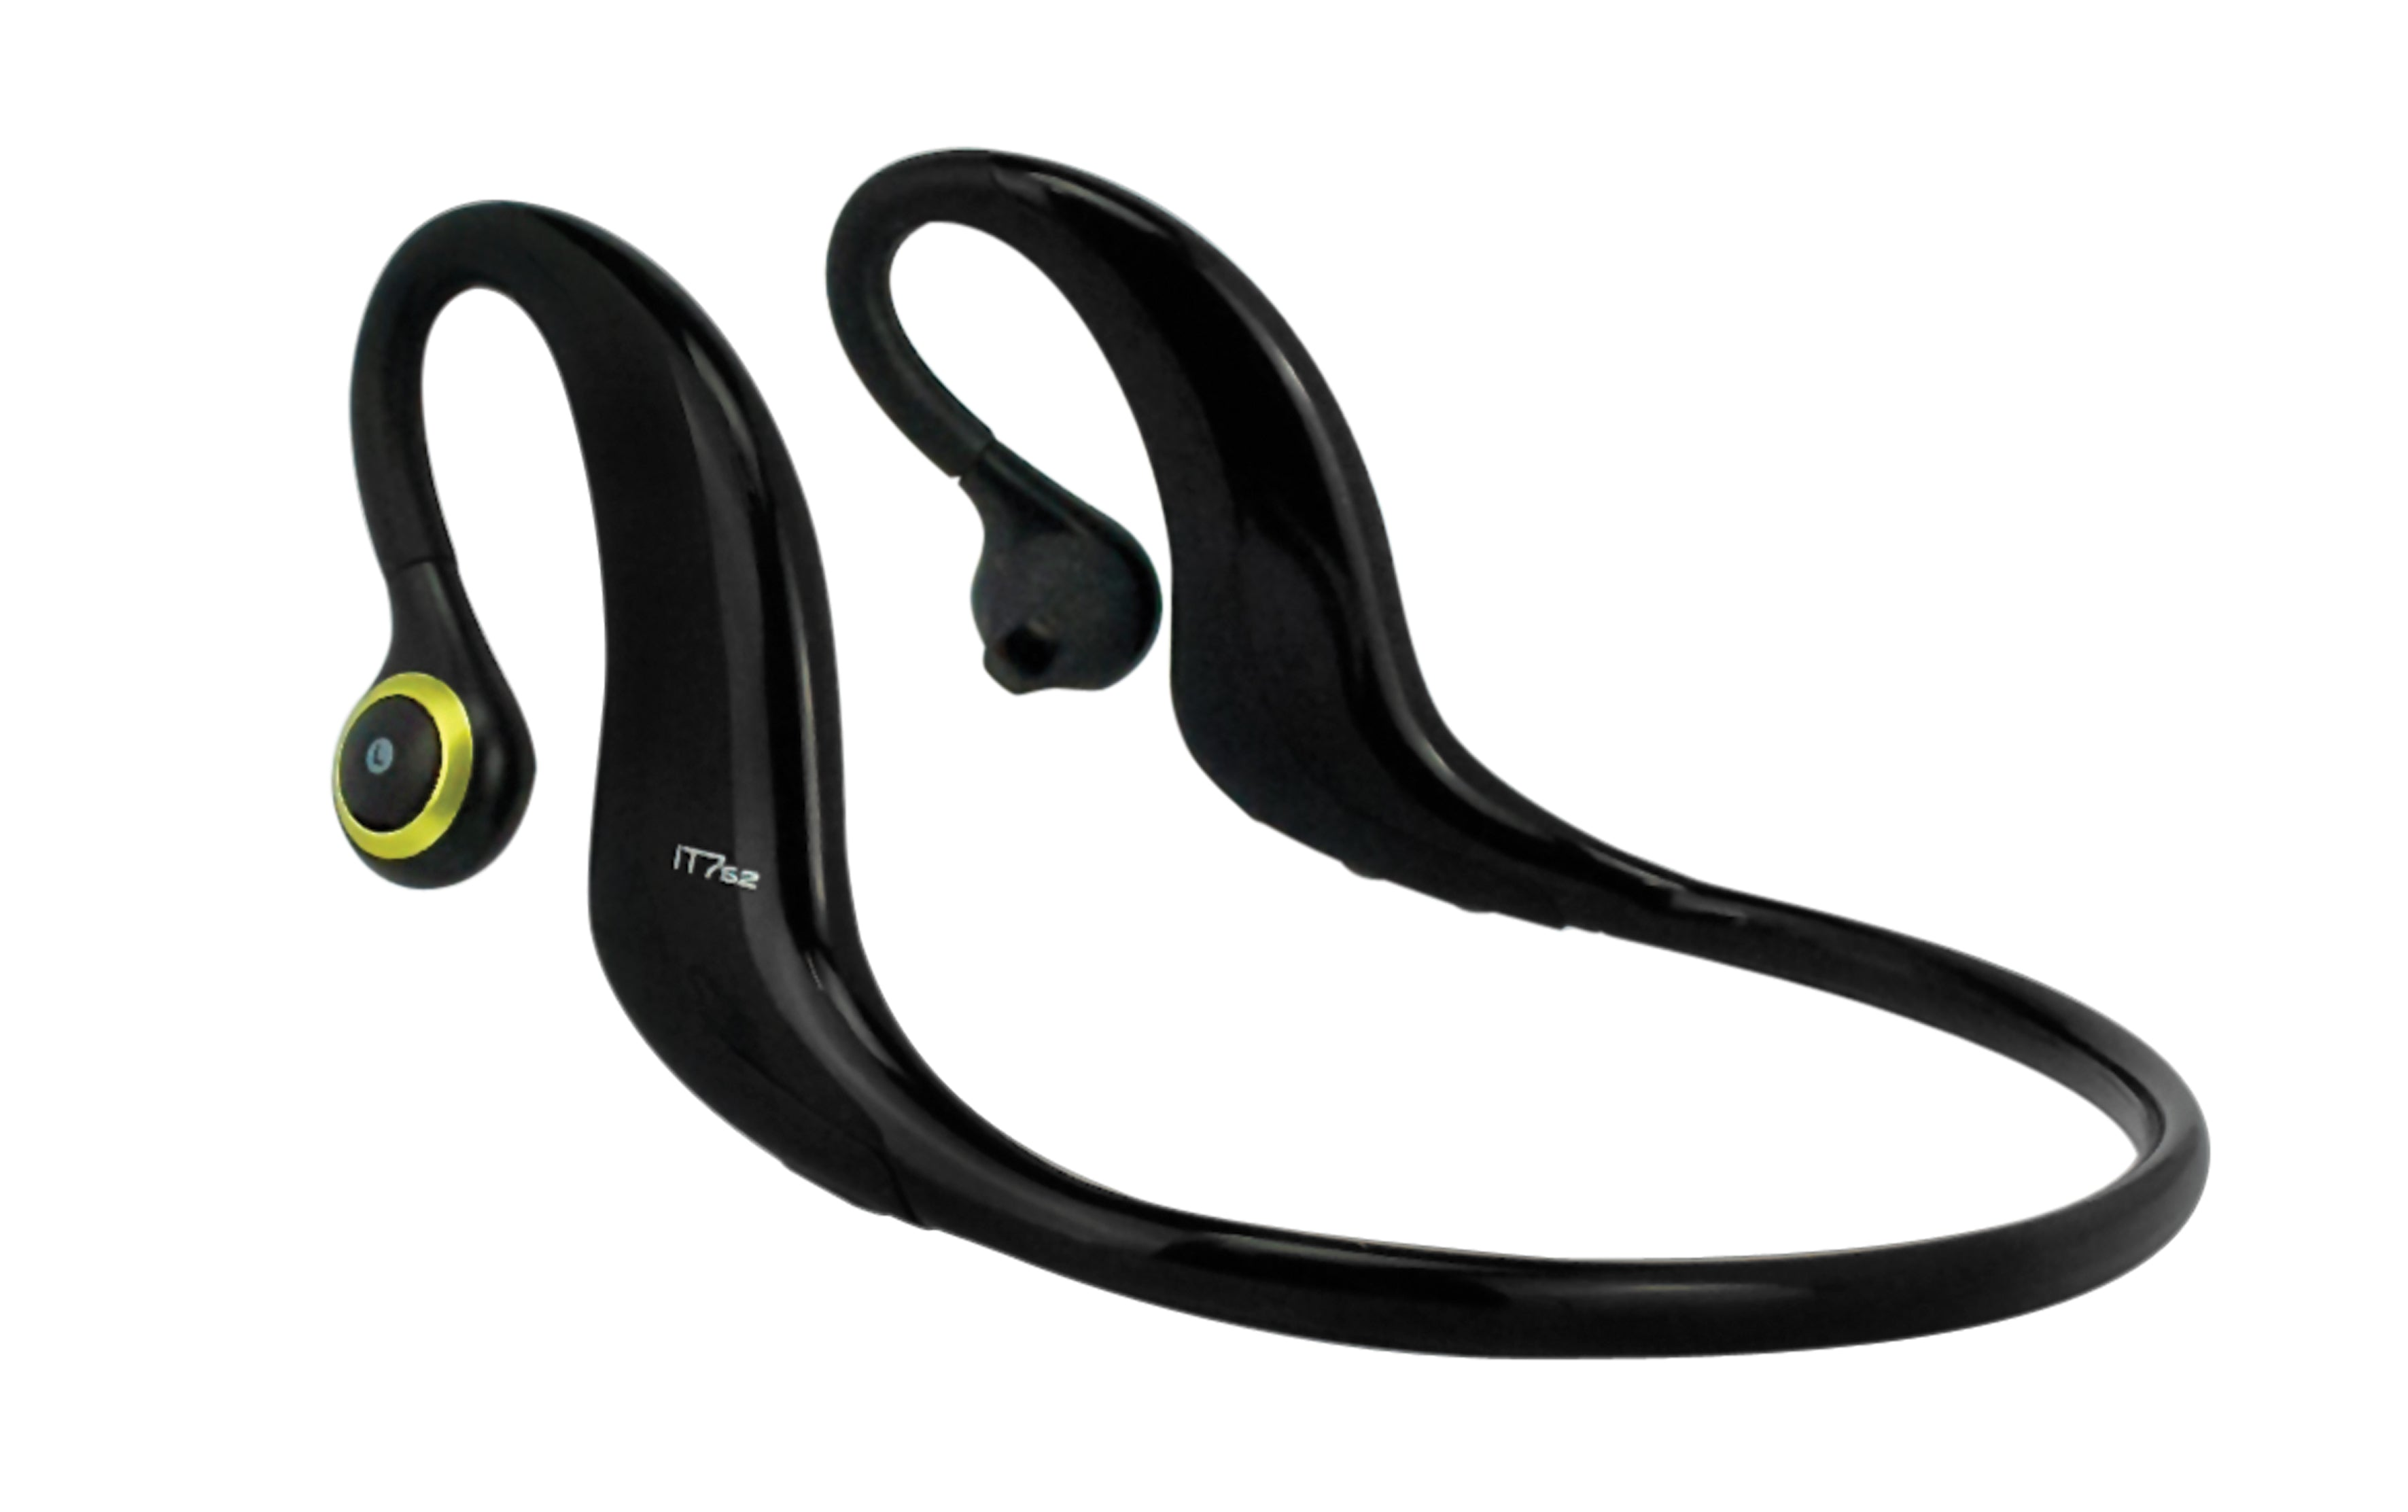 iT7s2 Wireless Sport Earphones